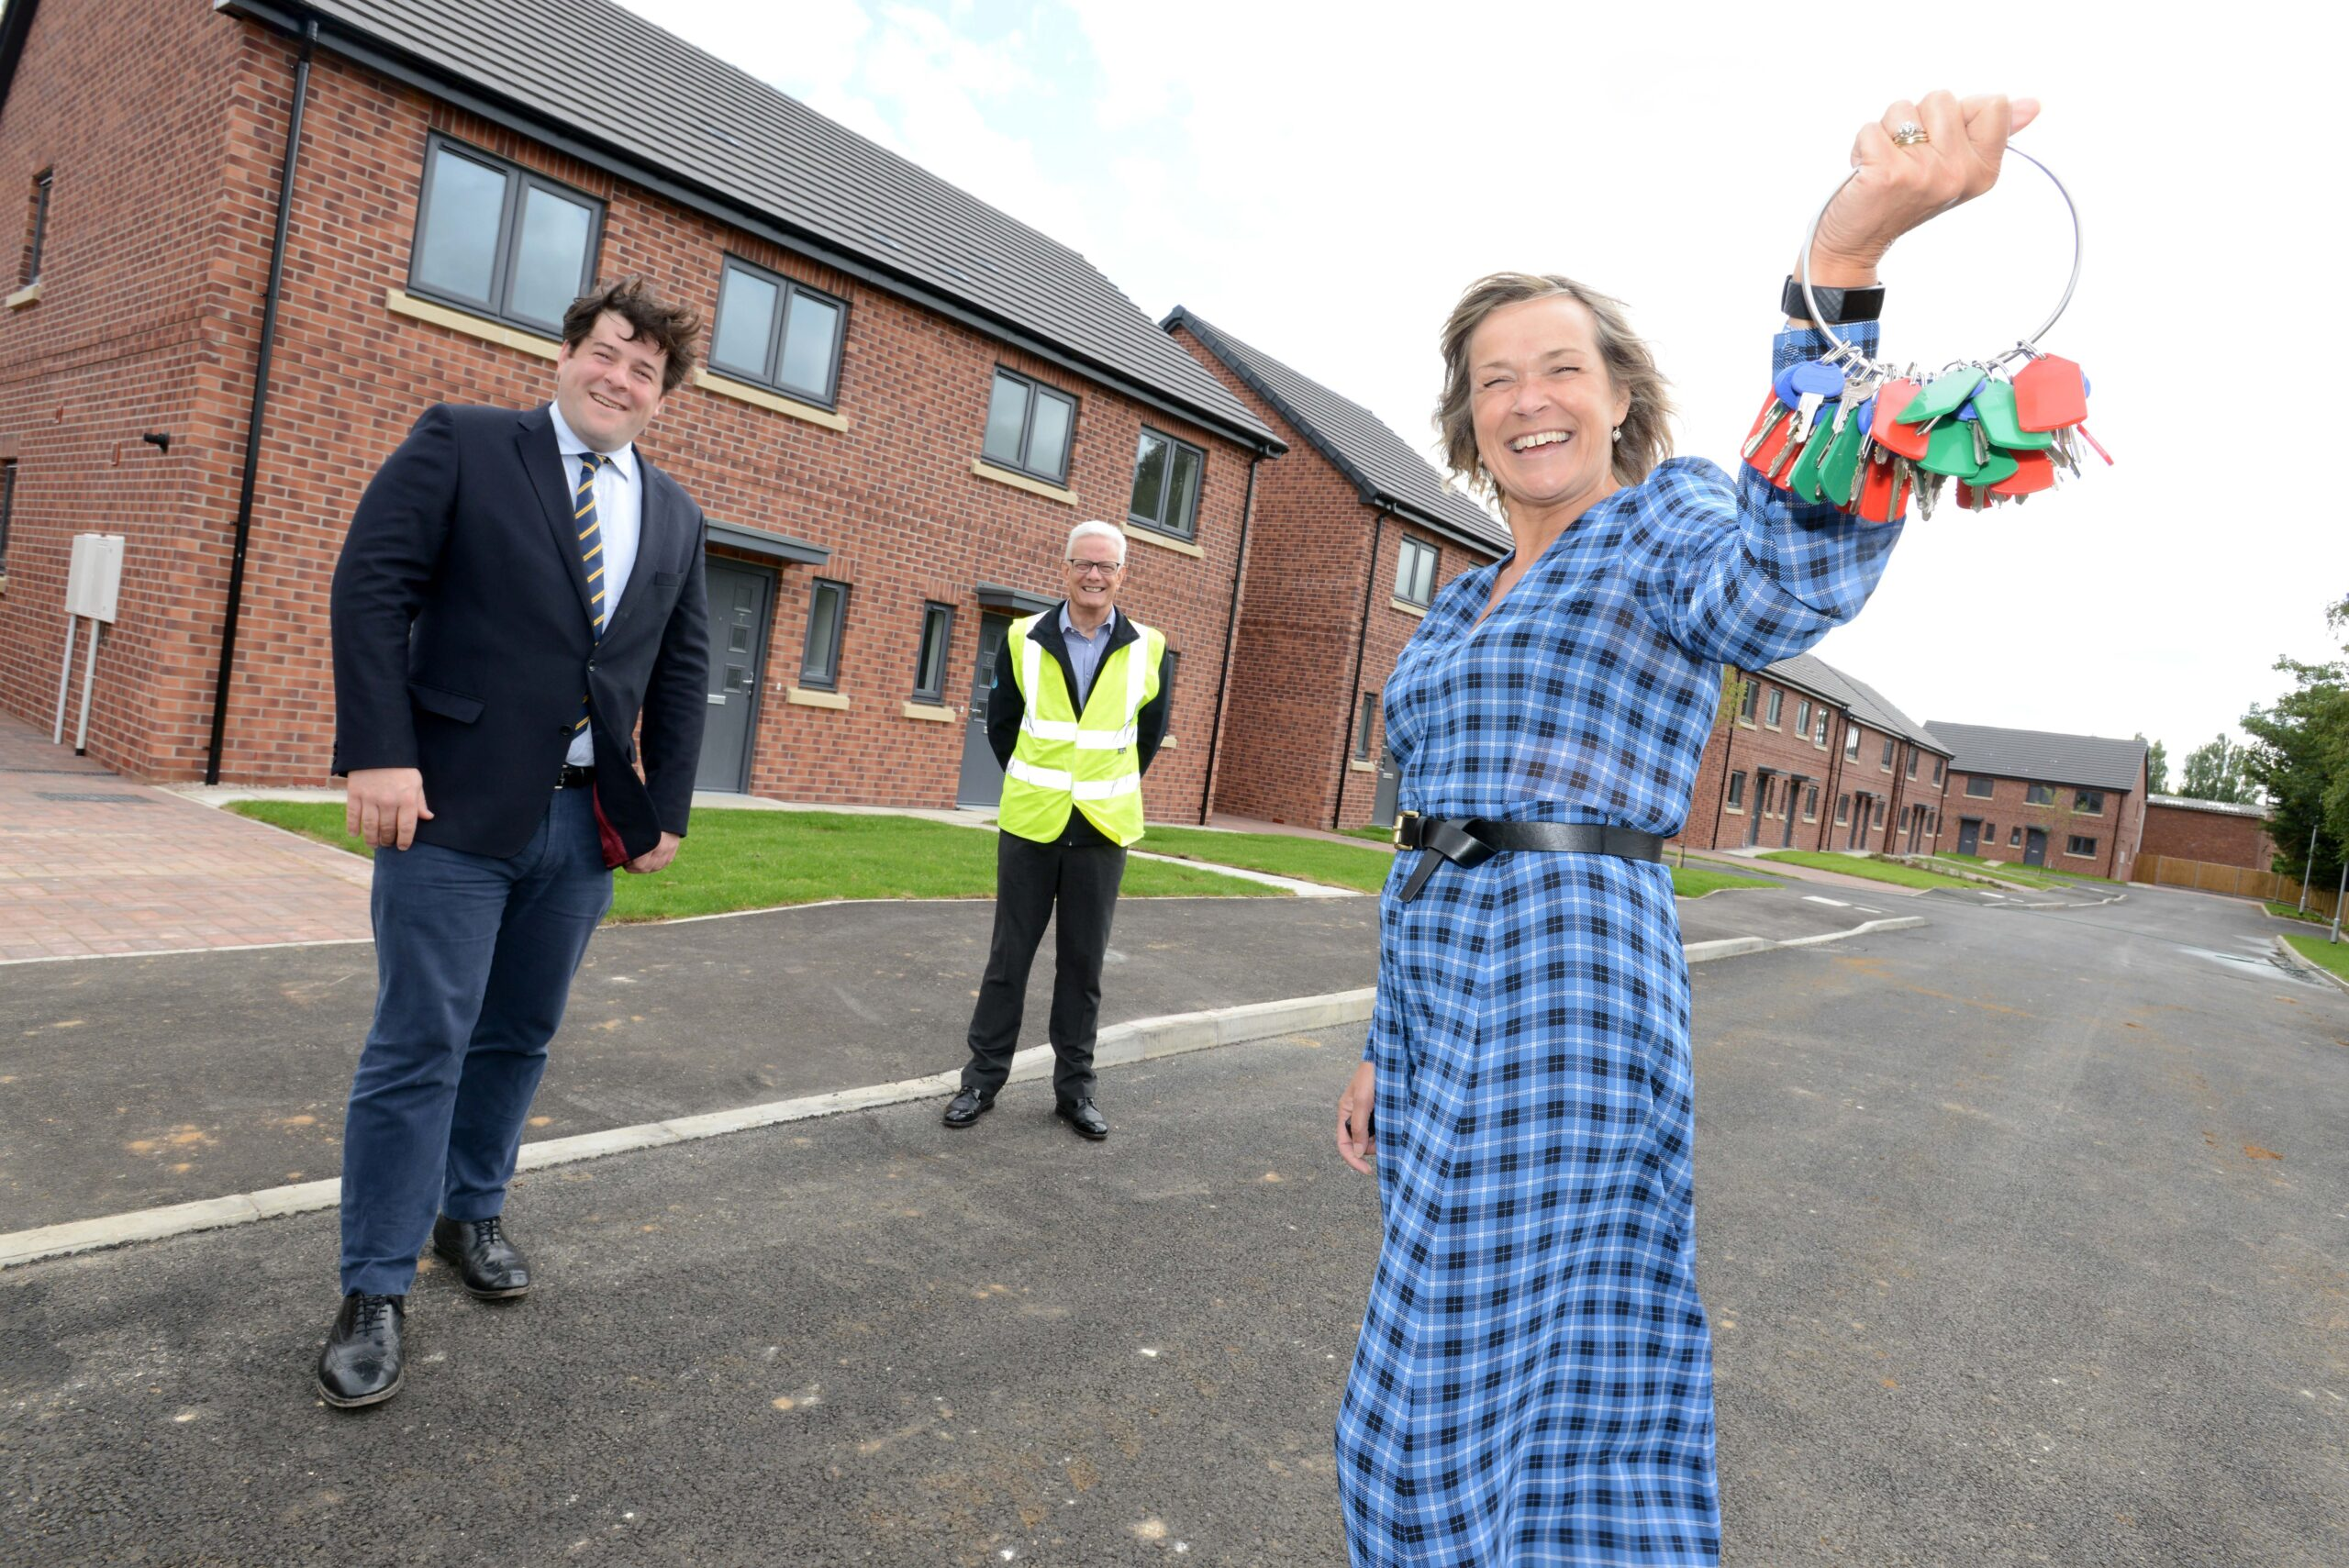 Work has been completed on 36 new homes on a famous site in Lincoln.